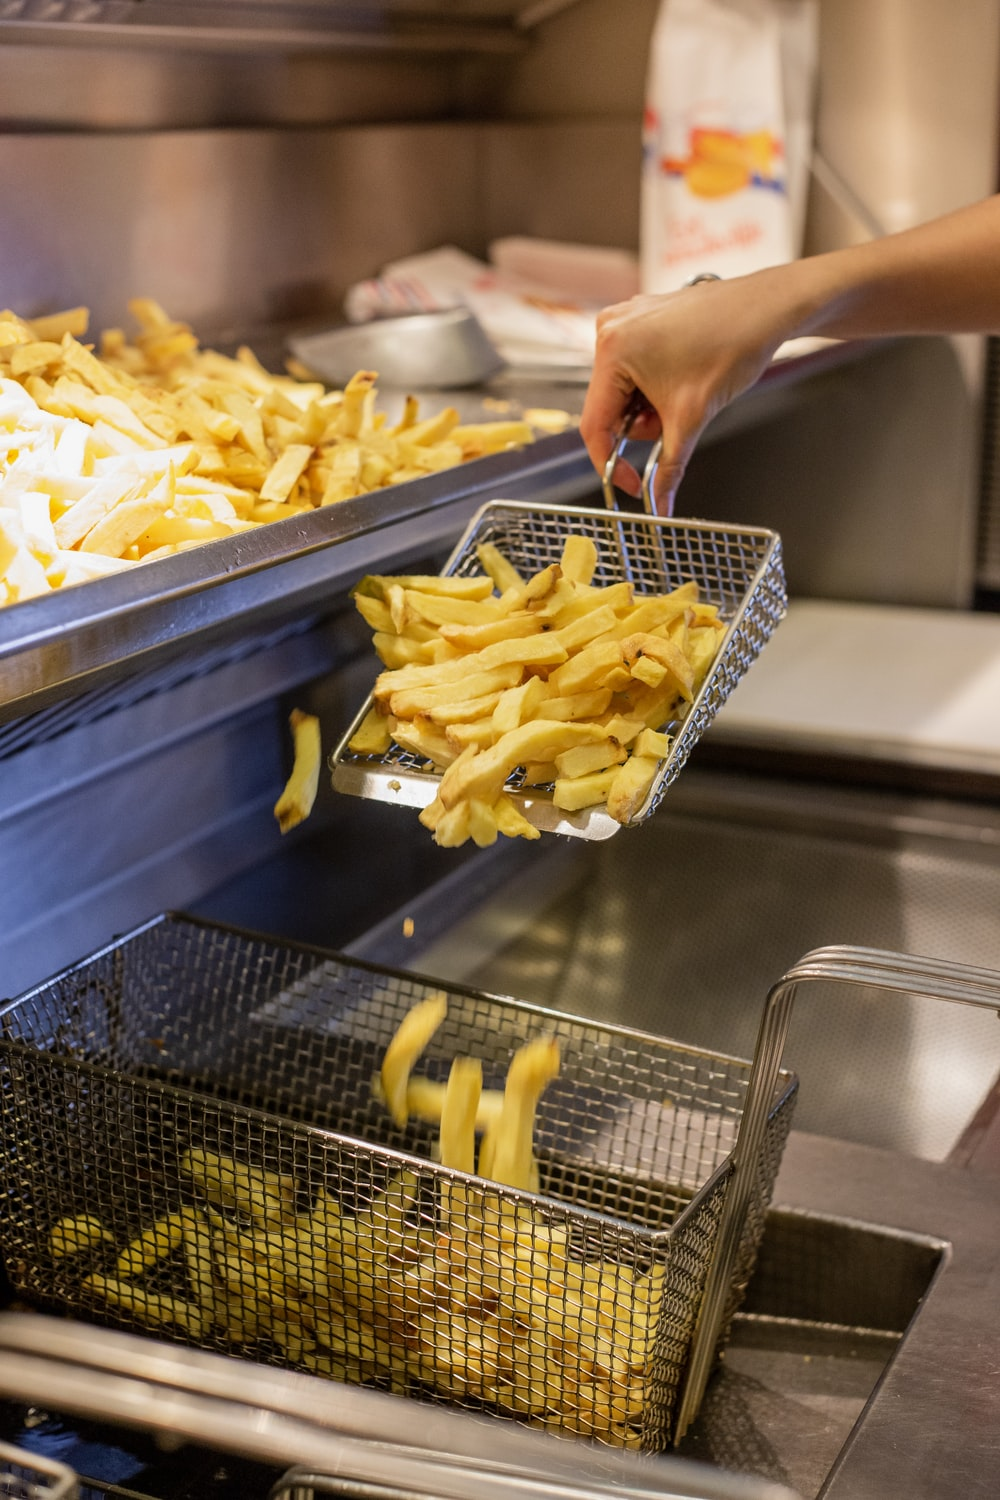 person holding deep frying basket of fries